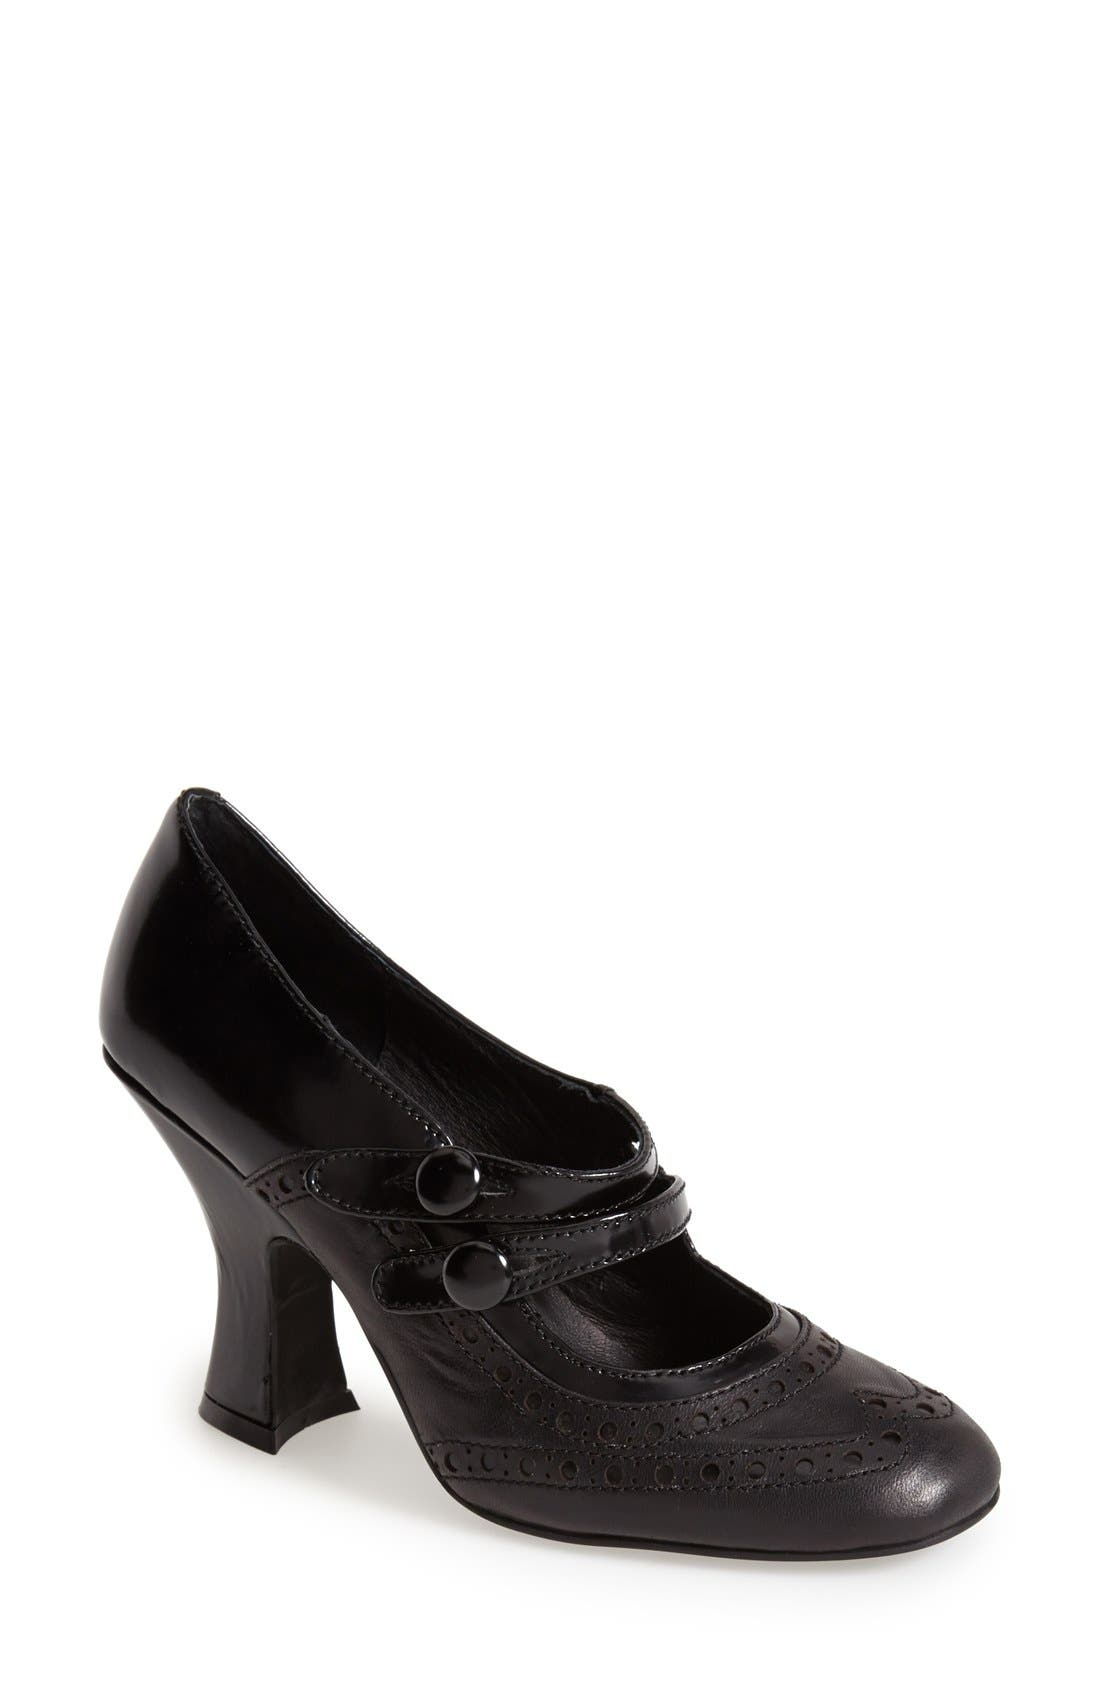 Alternate Image 1 Selected - Jeffrey Campbell 'Eclaire' Leather Pump (Women)